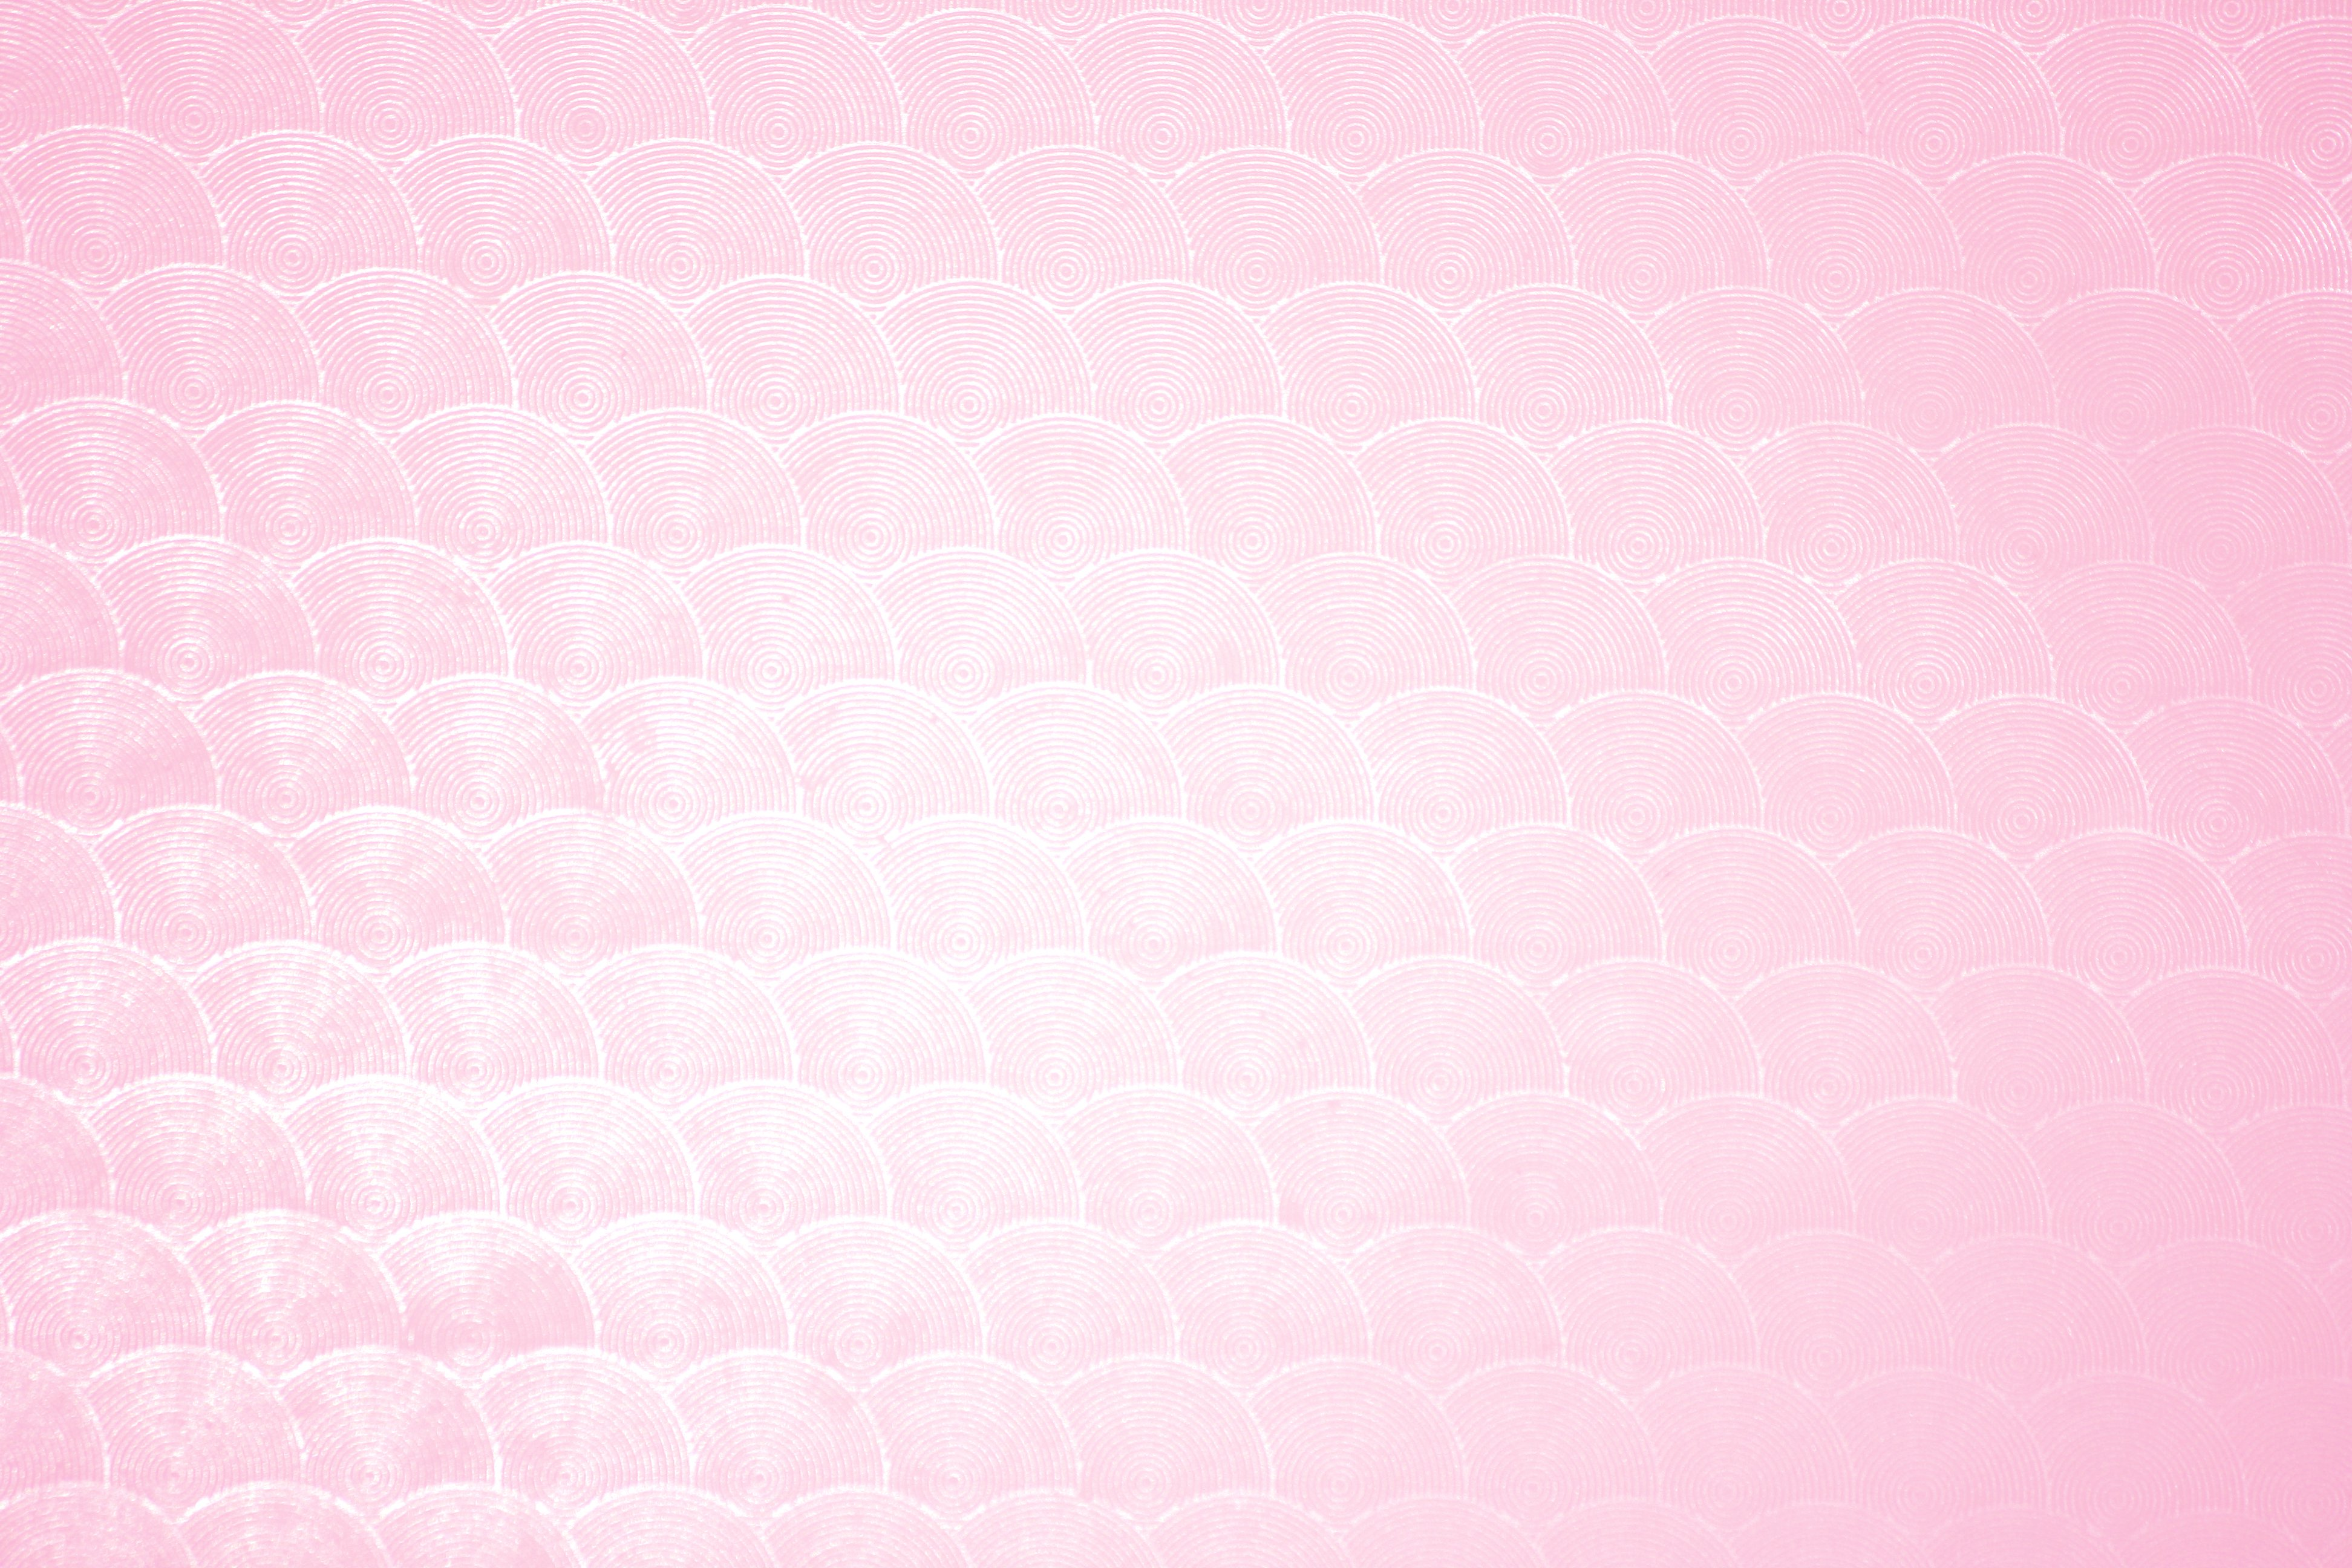 Background Circles Pink Pink Circle Patterned Plastic